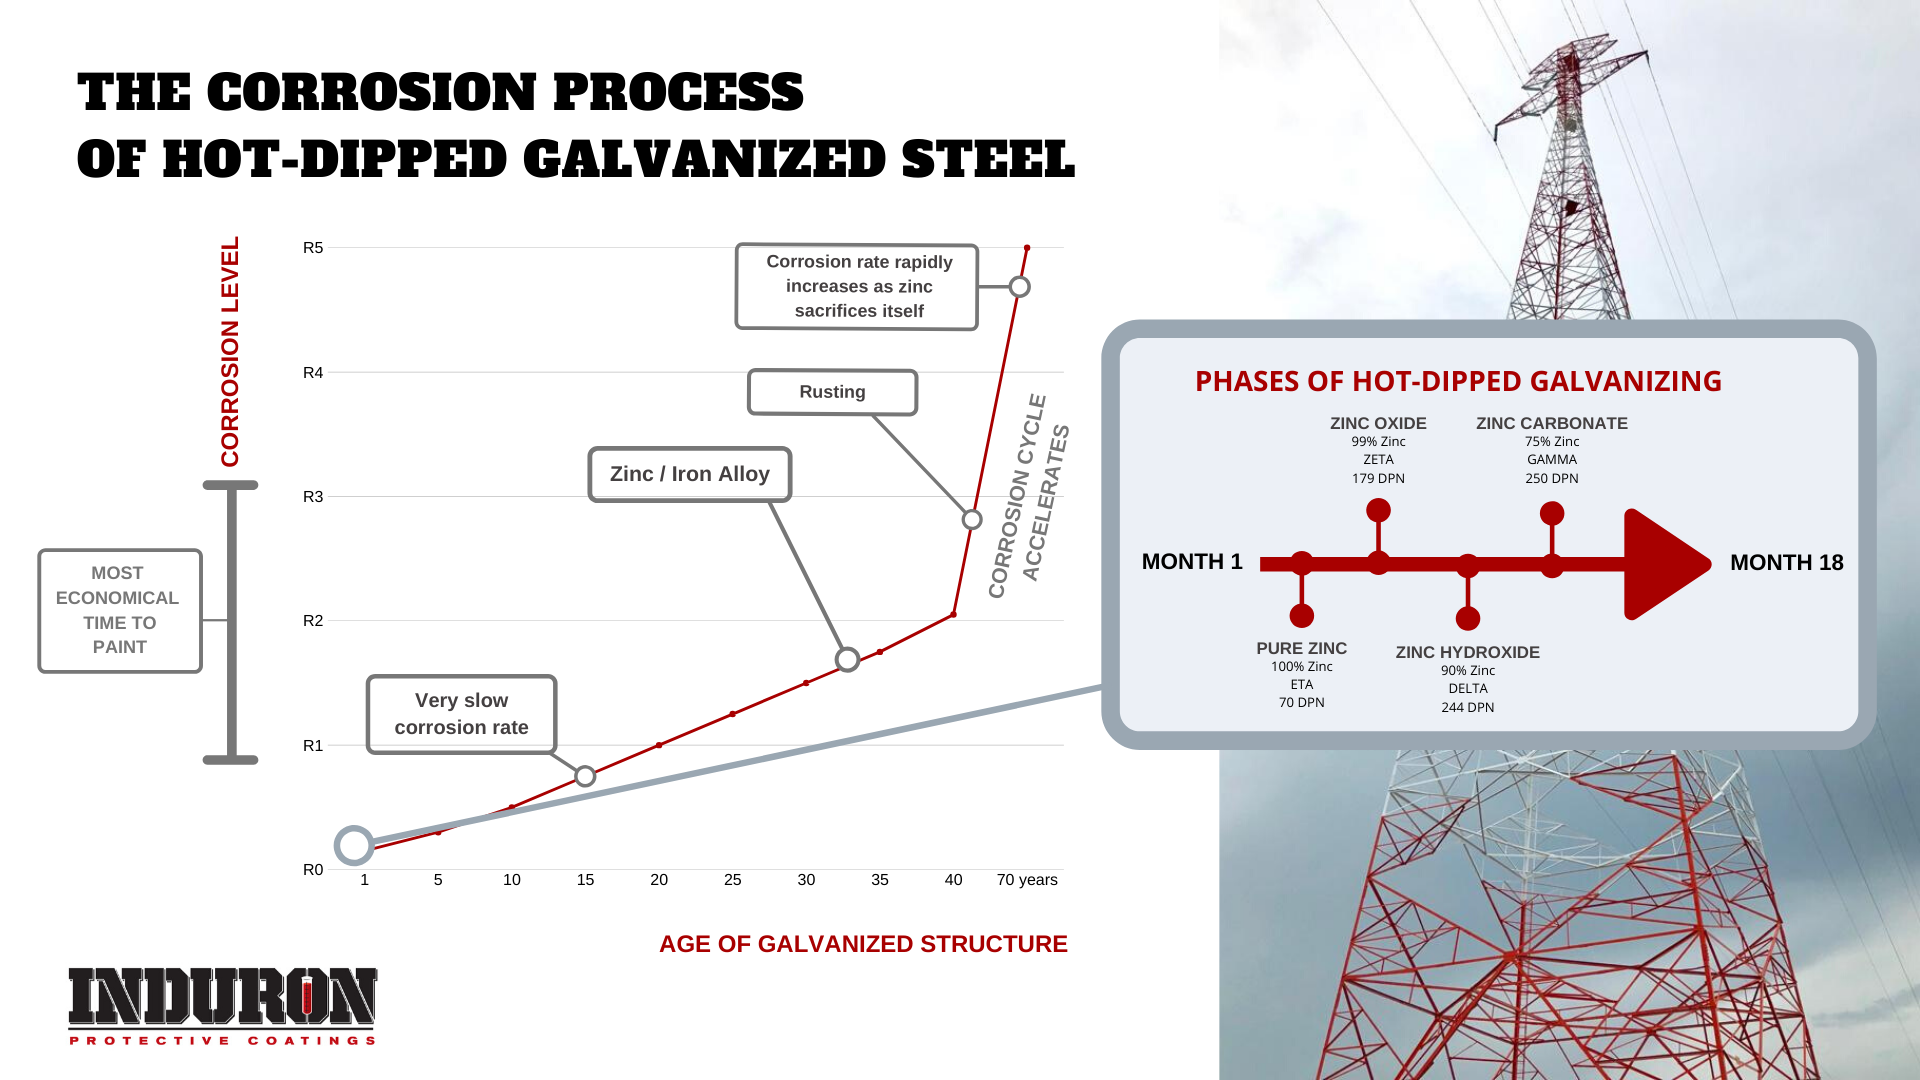 Corrosion process of hot-dipped galvanized steel